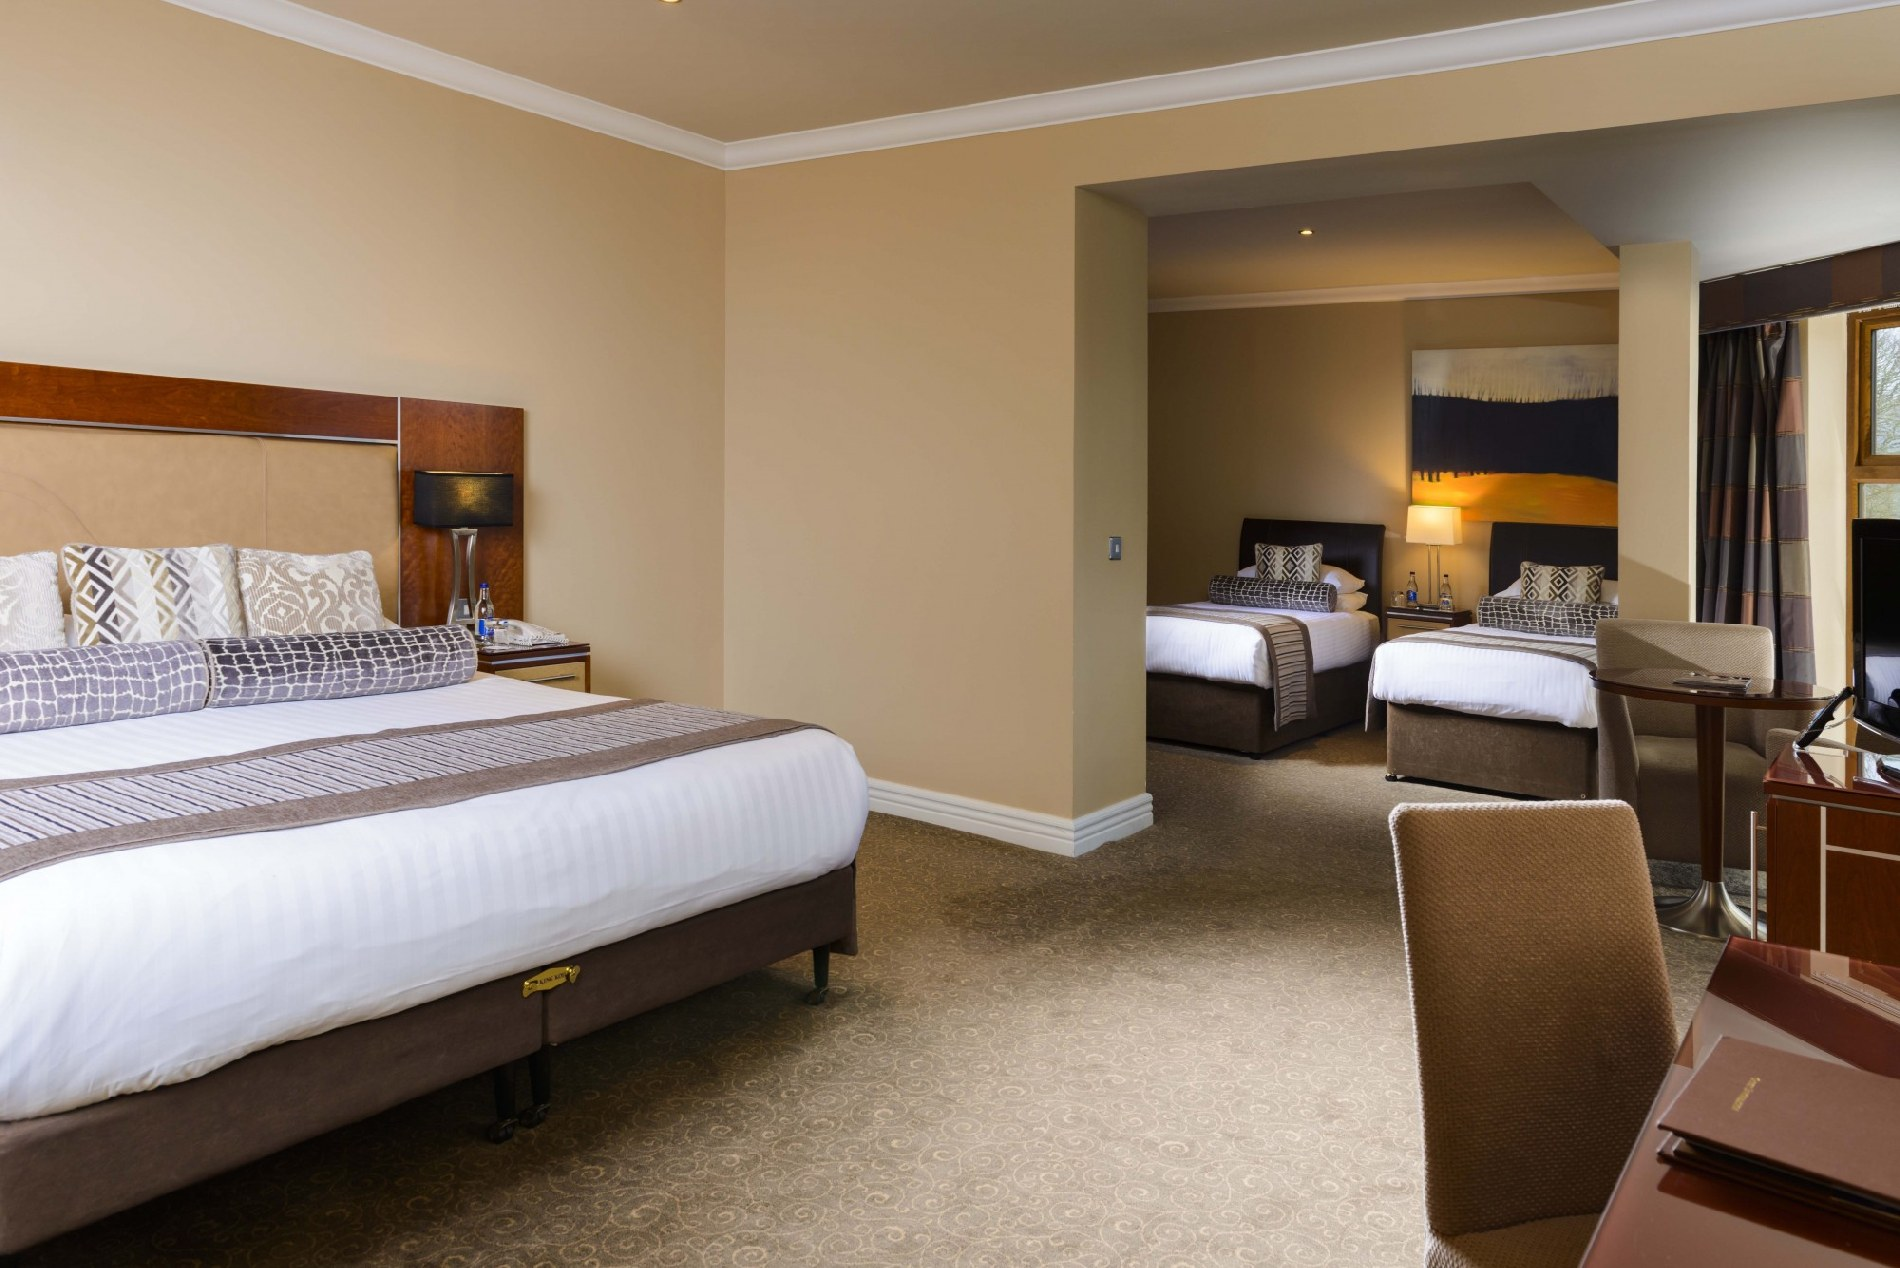 Our Family Rooms U0026 Suites Offer The Choice Of A Large Spacious Deluxe Room  With A King Bed And A Single Bed, Open Plan Suites Or Two Interconnecting  ...